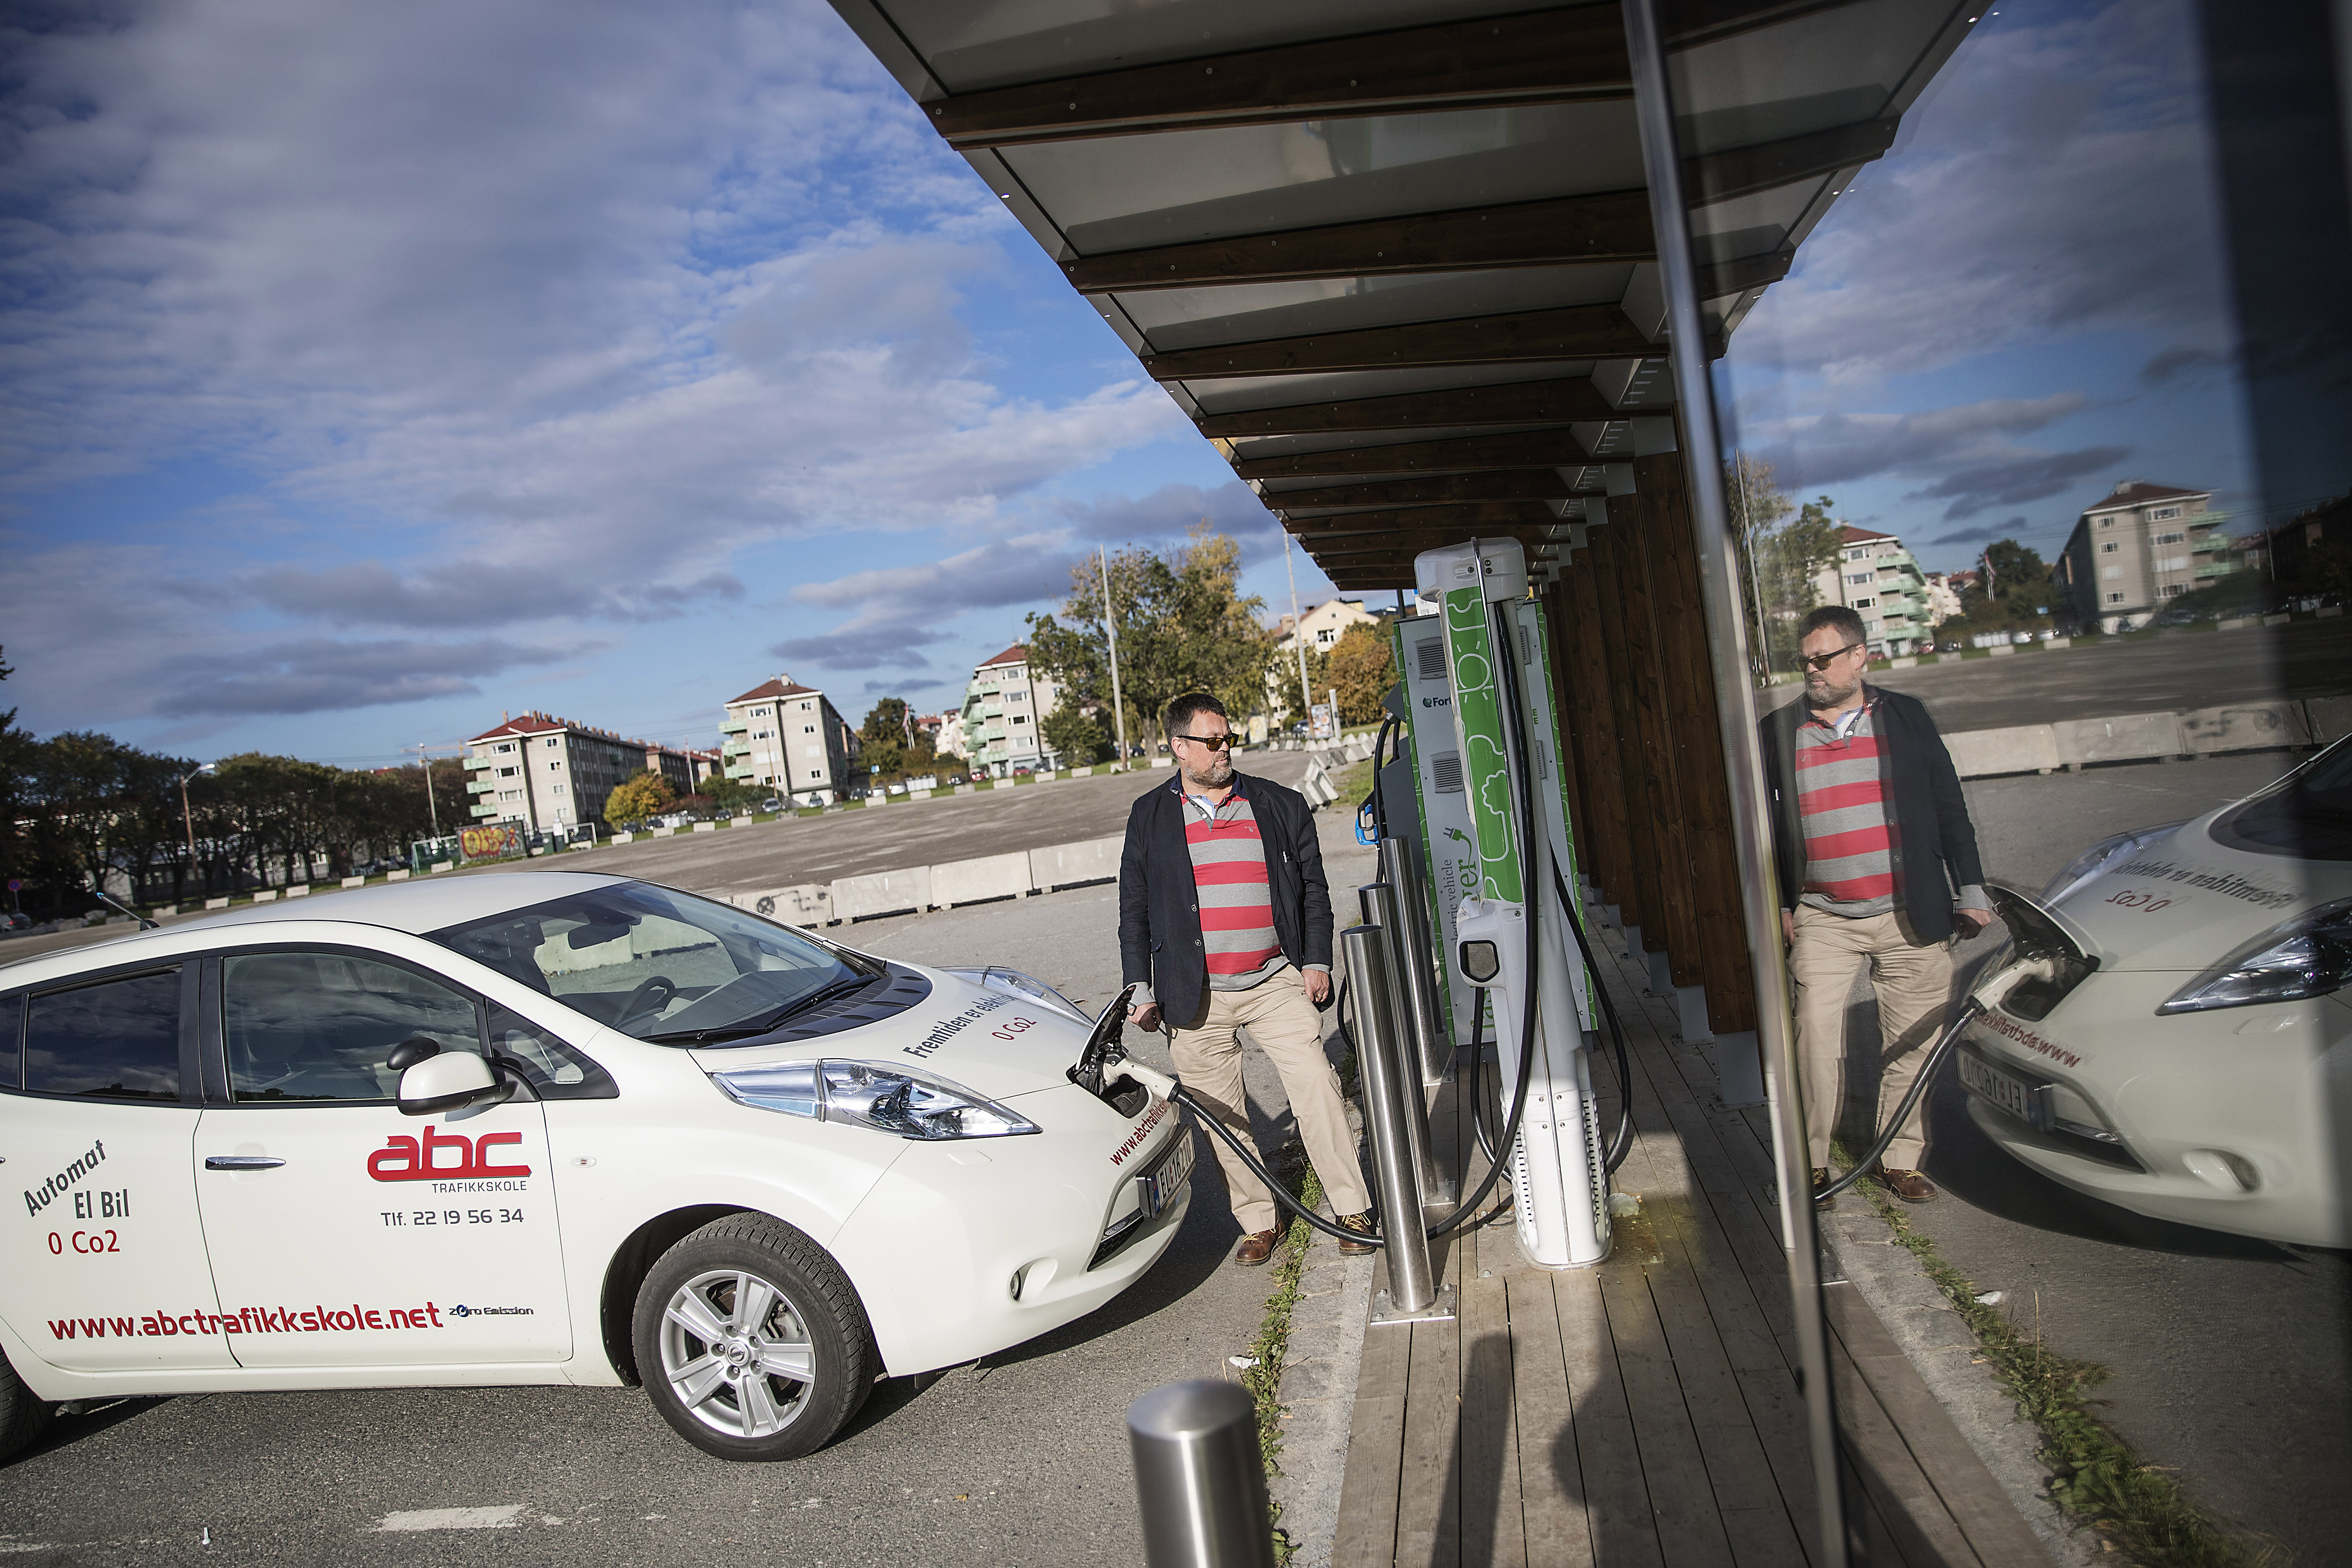 A driving-school owner charges an electric Nissan Leaf near his office in Oslo, Norway, Oct. 10, 2016. While Norway offers major breaks to electric car owners in a bid to wean its own citizens off fossil fuels, it remains one of the world's biggest oil producers and is revving up production for exports, a contradiction not lost on critics. (Thomas Haugersveen/The New York Times)